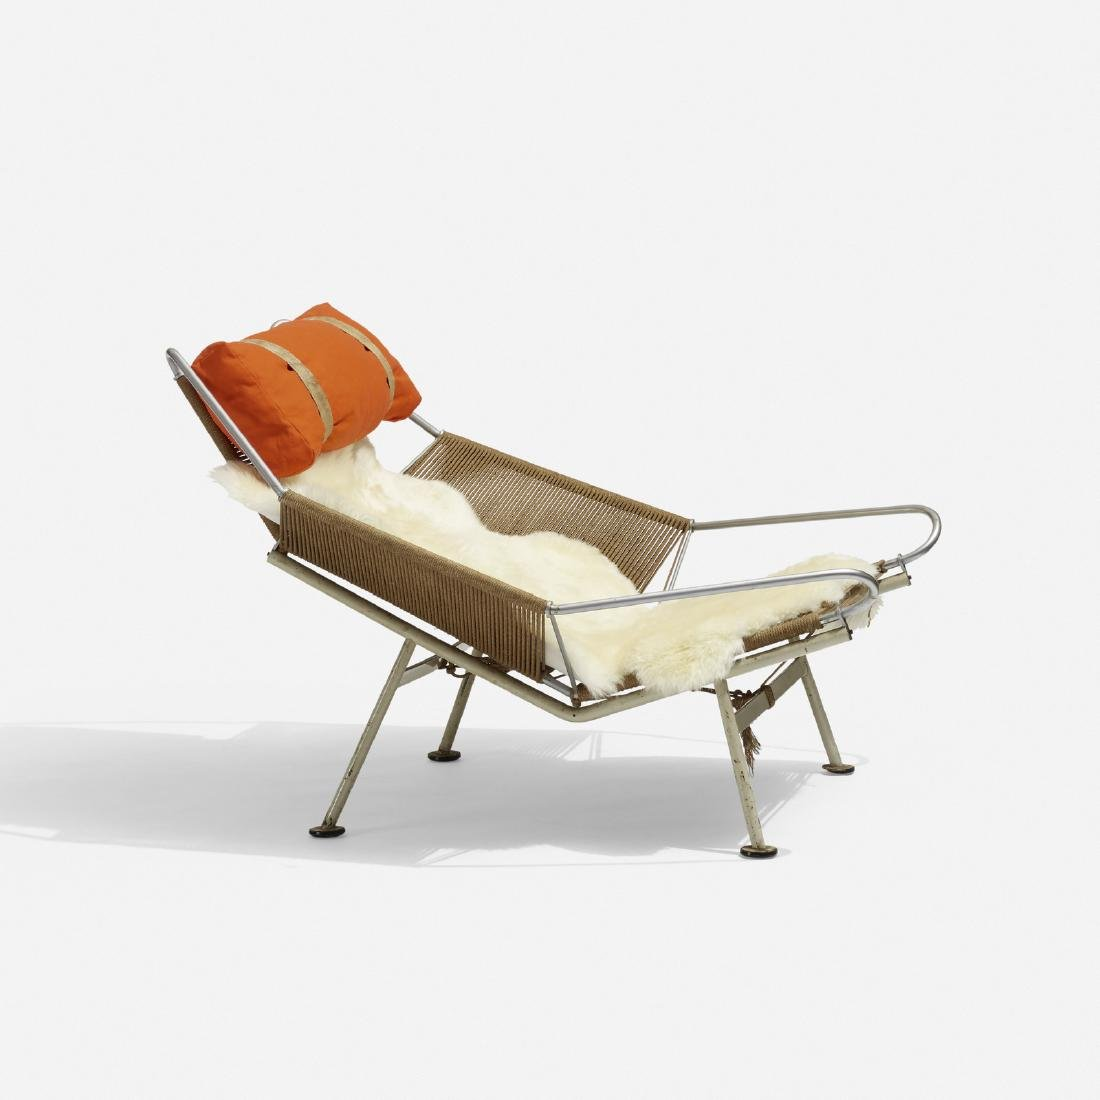 Hans J. Wegner, Flag Halyard lounge chair